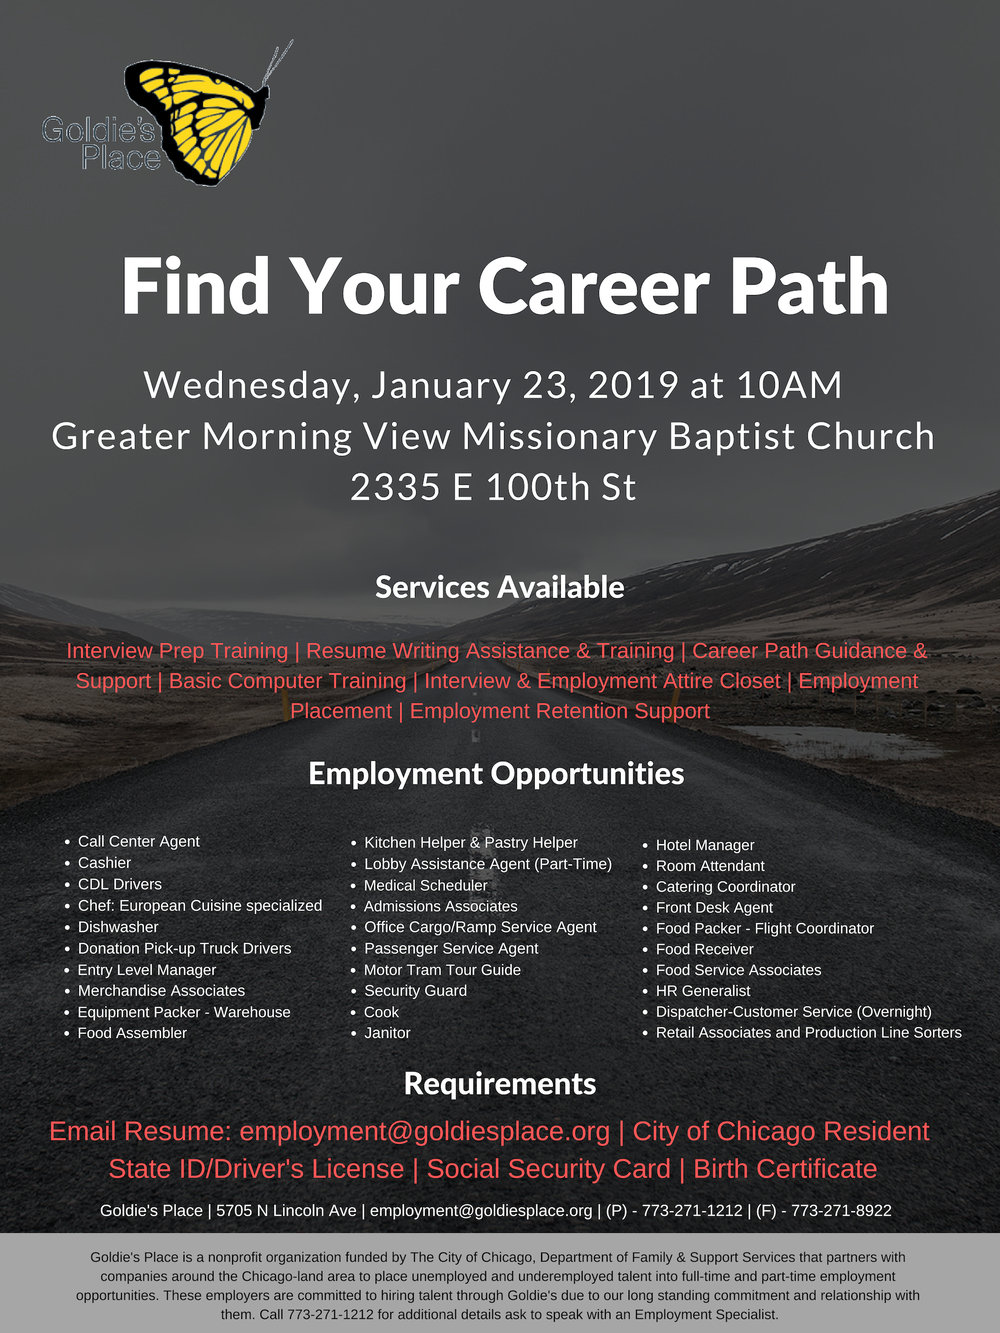 Find Your Career Path- Goldies Place.jpg